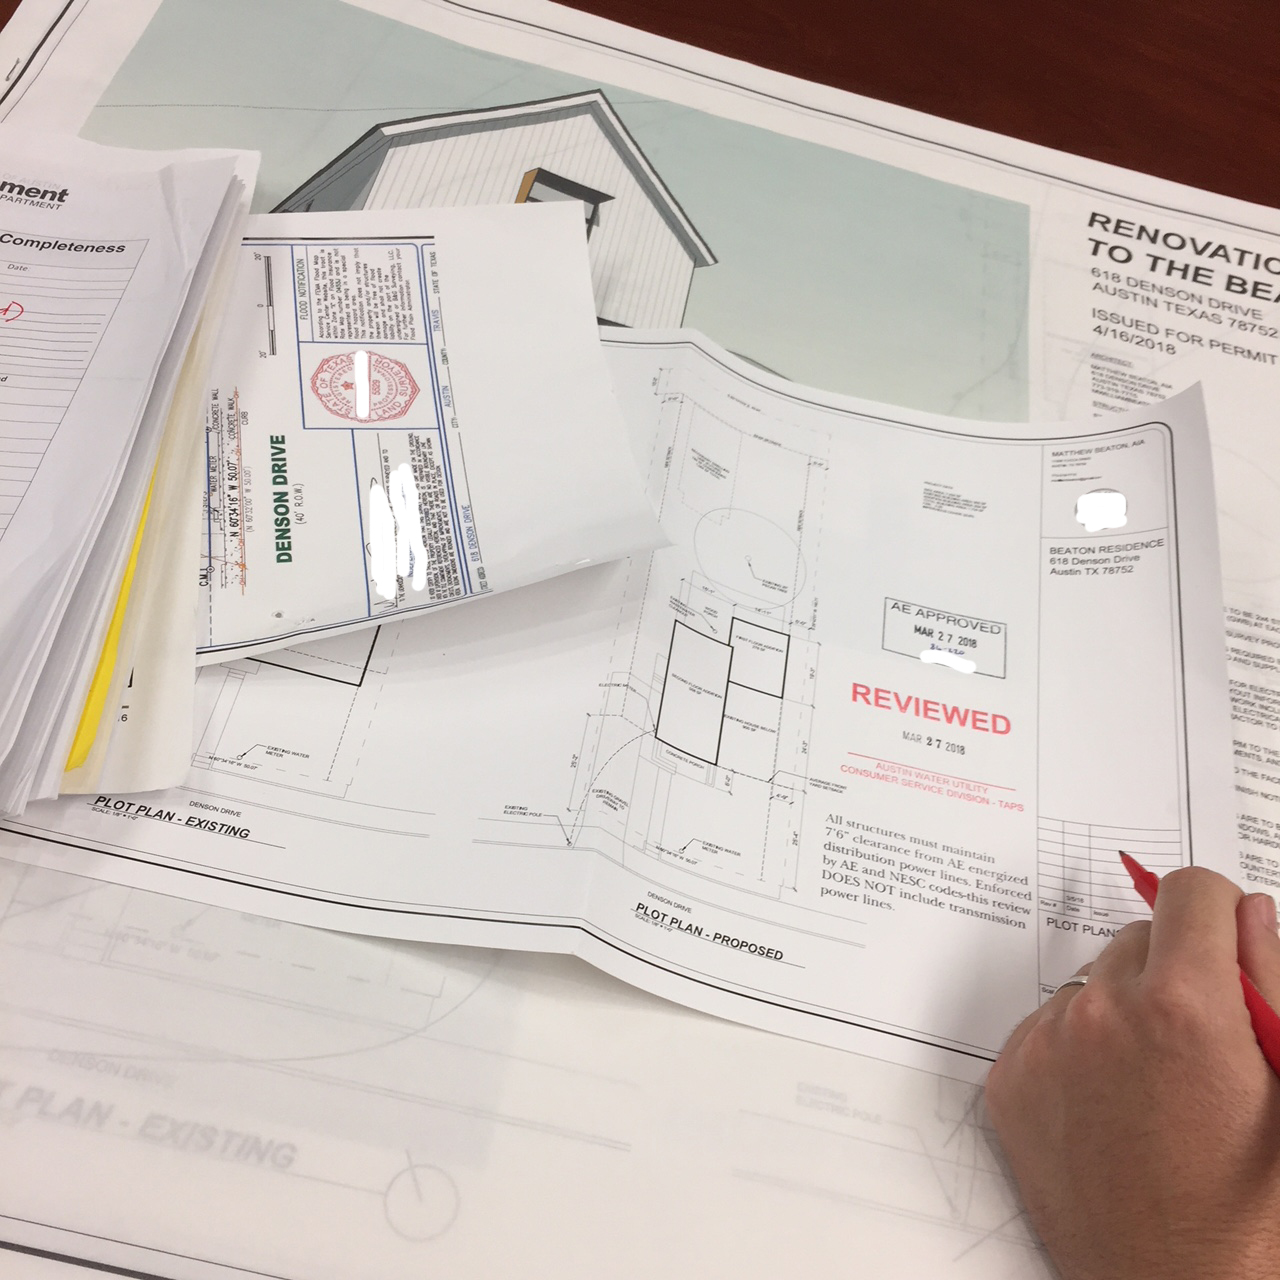 Building Permit Review! - Since we had a full set of stamped drawings and opted for the expedited review, the process was relatively quick and painless.